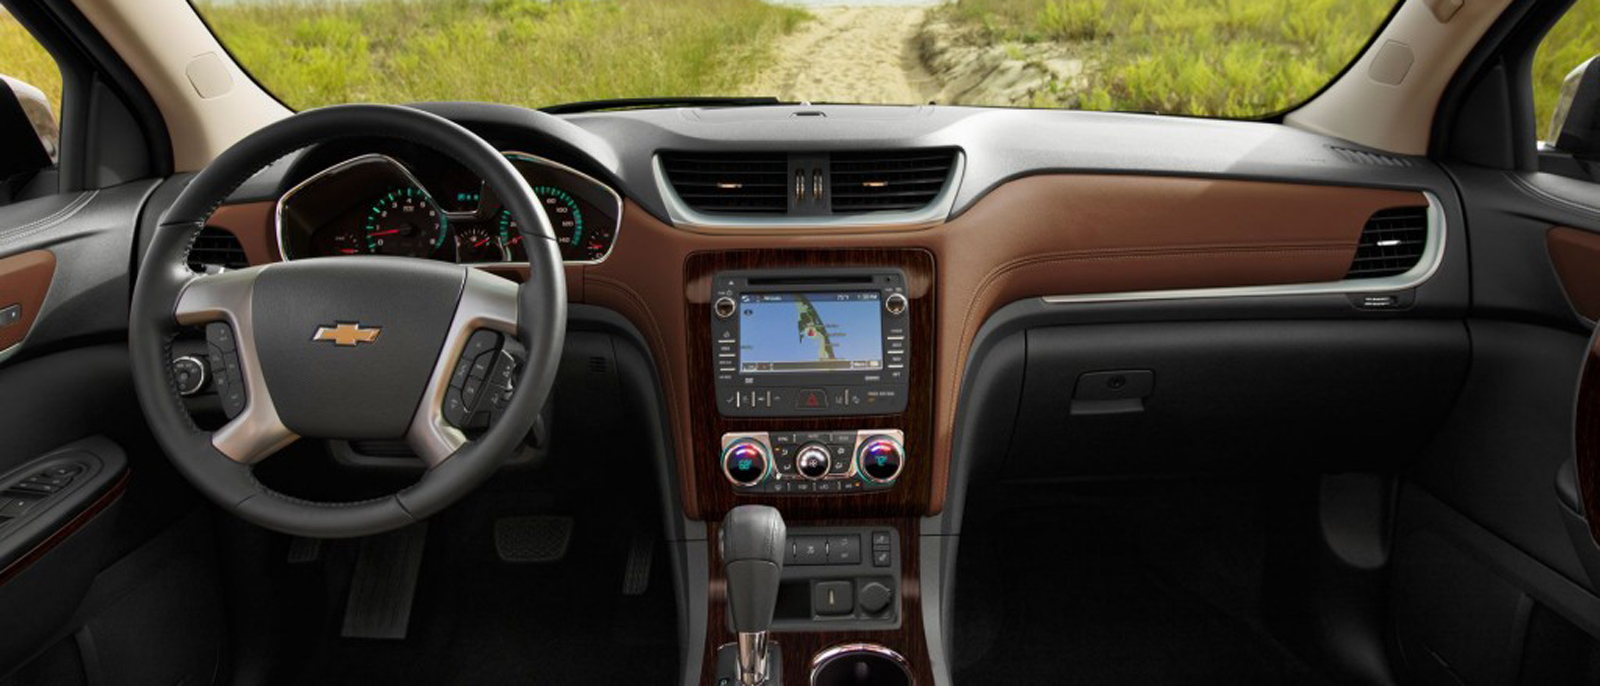 2015 Chevrolet Traverse Interior